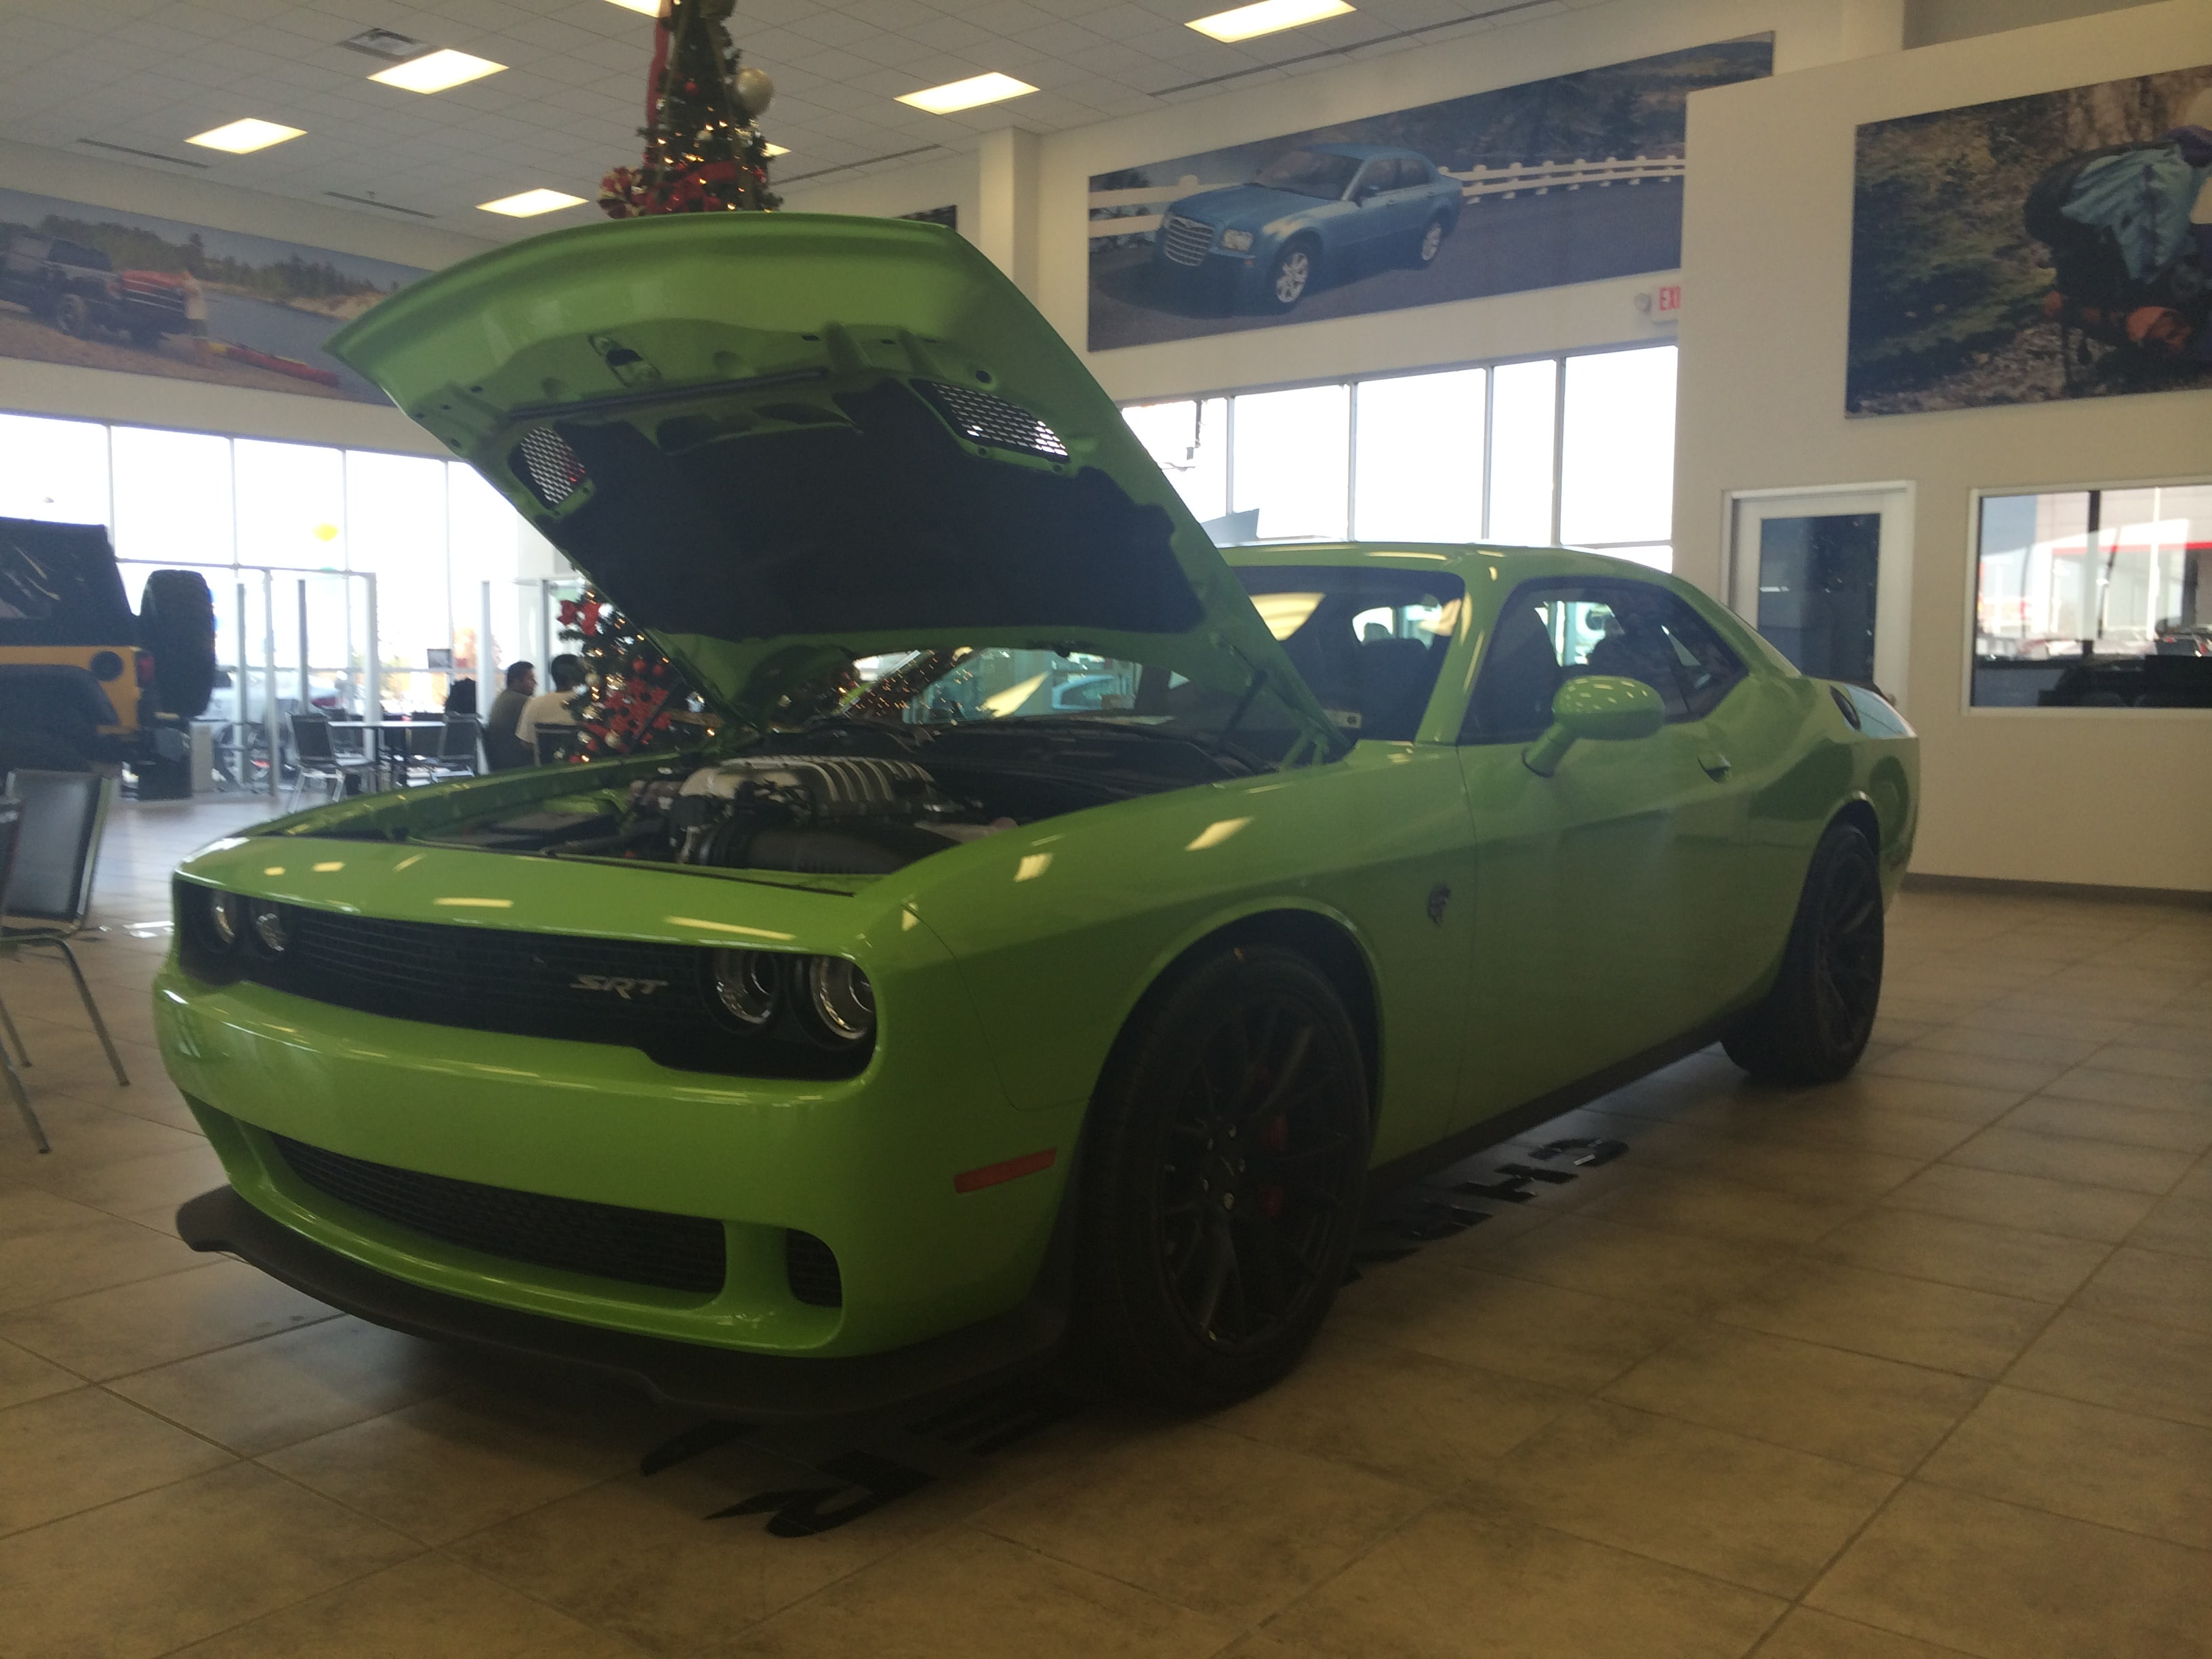 Marvelous 2015 Dodge Challenger SRT Hellcat For Sale In San Antonio